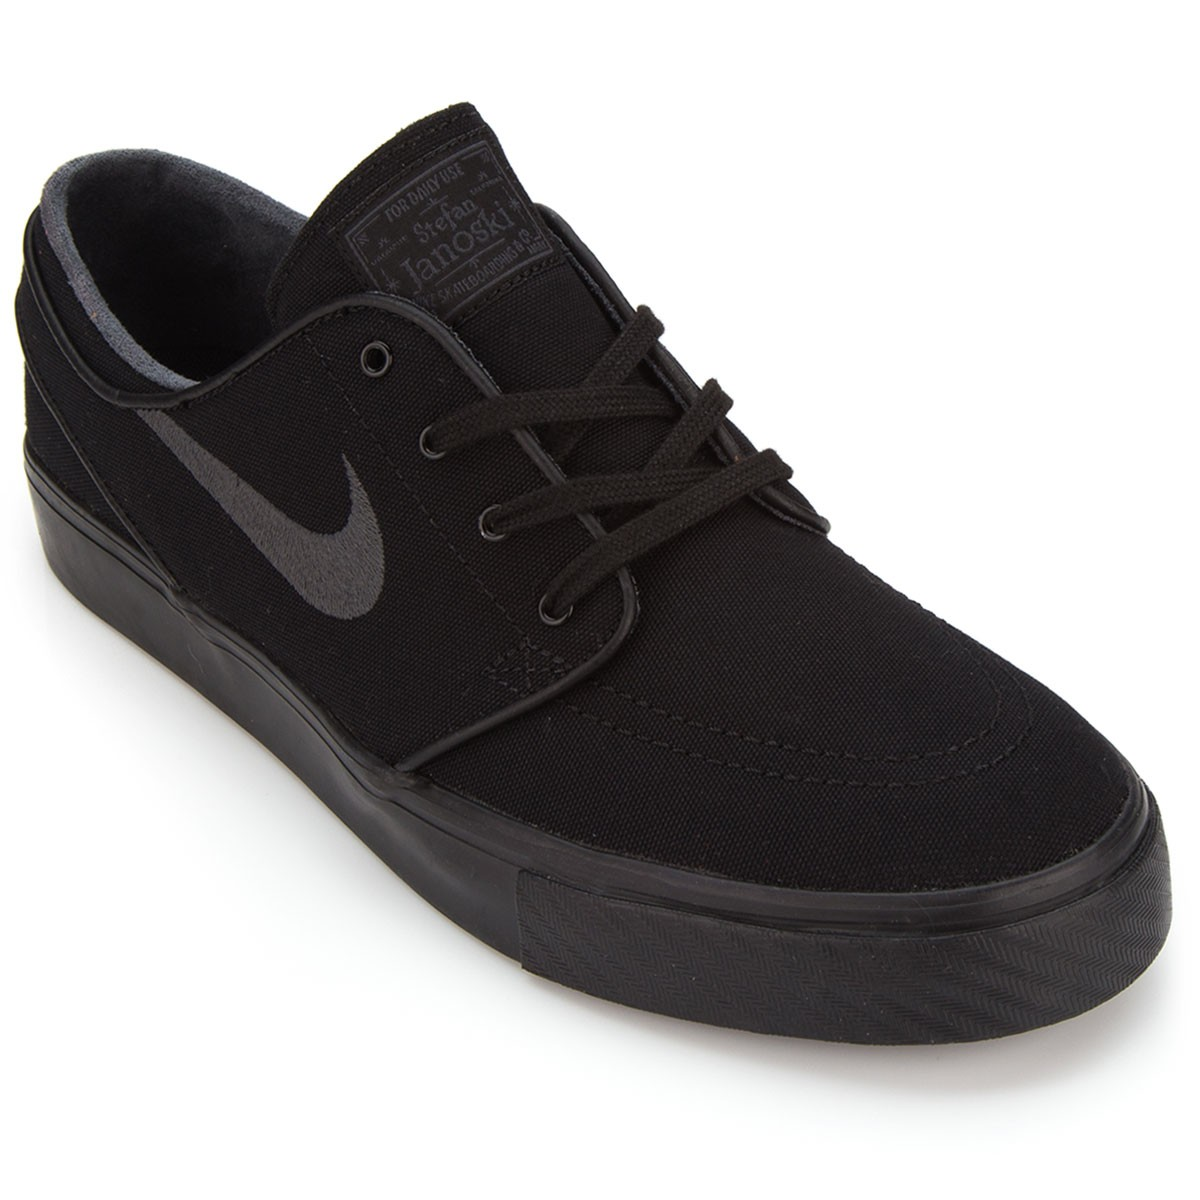 Janoskis Shoes For 28 Images Gentriculation Janoski